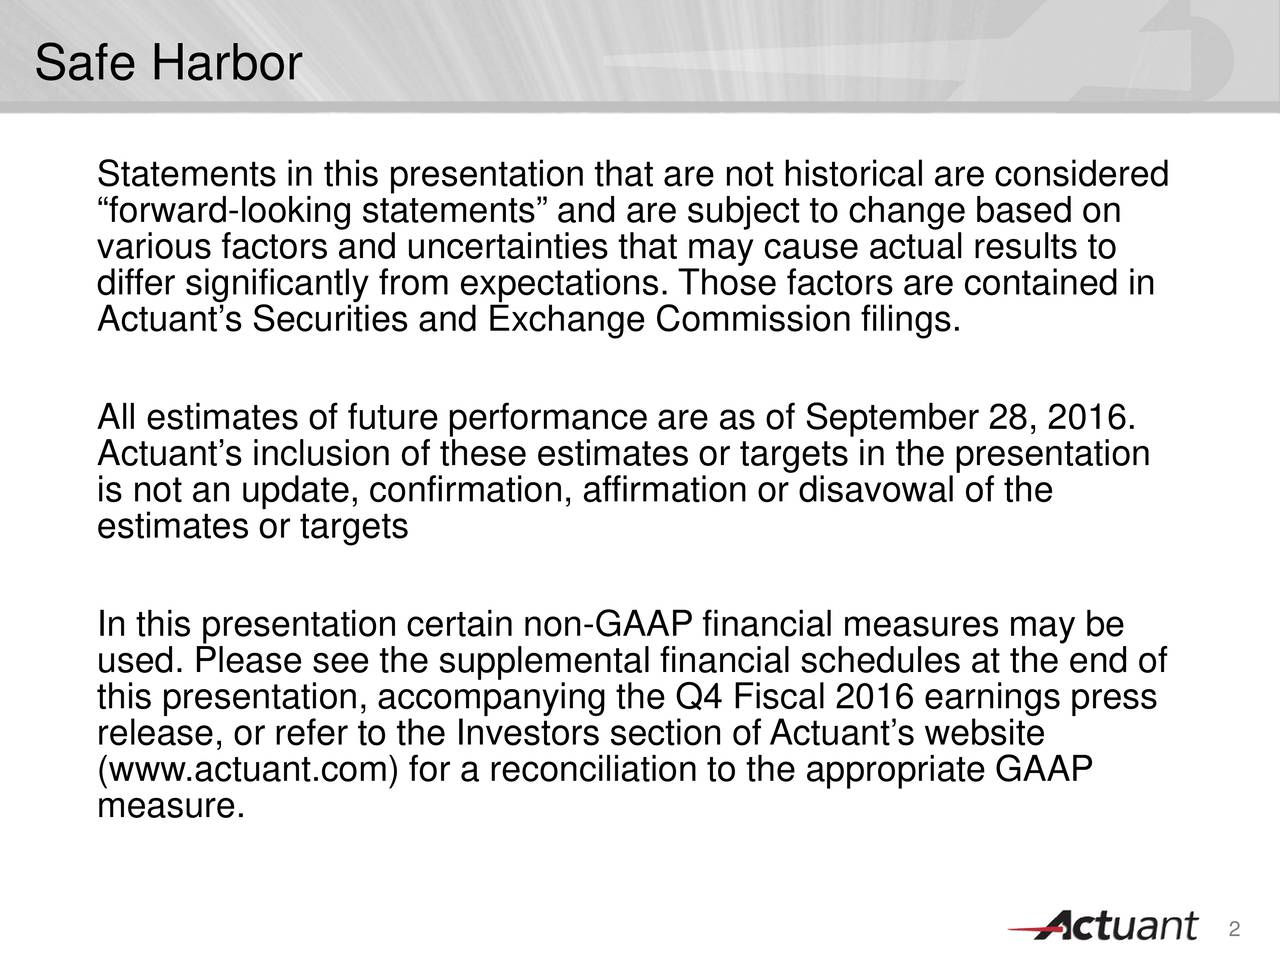 Statements in this presentation that are not historical are considered forward-looking statements and are subject to change based on various factors and uncertainties that may cause actual results to differ significantly from expectations. Those factors are contained in Actuants Securities and Exchange Commission filings. All estimates of future performance are as of September 28, 2016. Actuants inclusion of these estimates or targets in the presentation is not an update, confirmation, affirmation or disavowal of the estimates or targets In this presentation certain non-GAAP financial measures may be used. Please see the supplemental financial schedules at the end of this presentation, accompanying the Q4 Fiscal 2016 earnings press release, or refer to the Investors section ofActuants website (www.actuant.com) for a reconciliation to the appropriate GAAP measure. 2